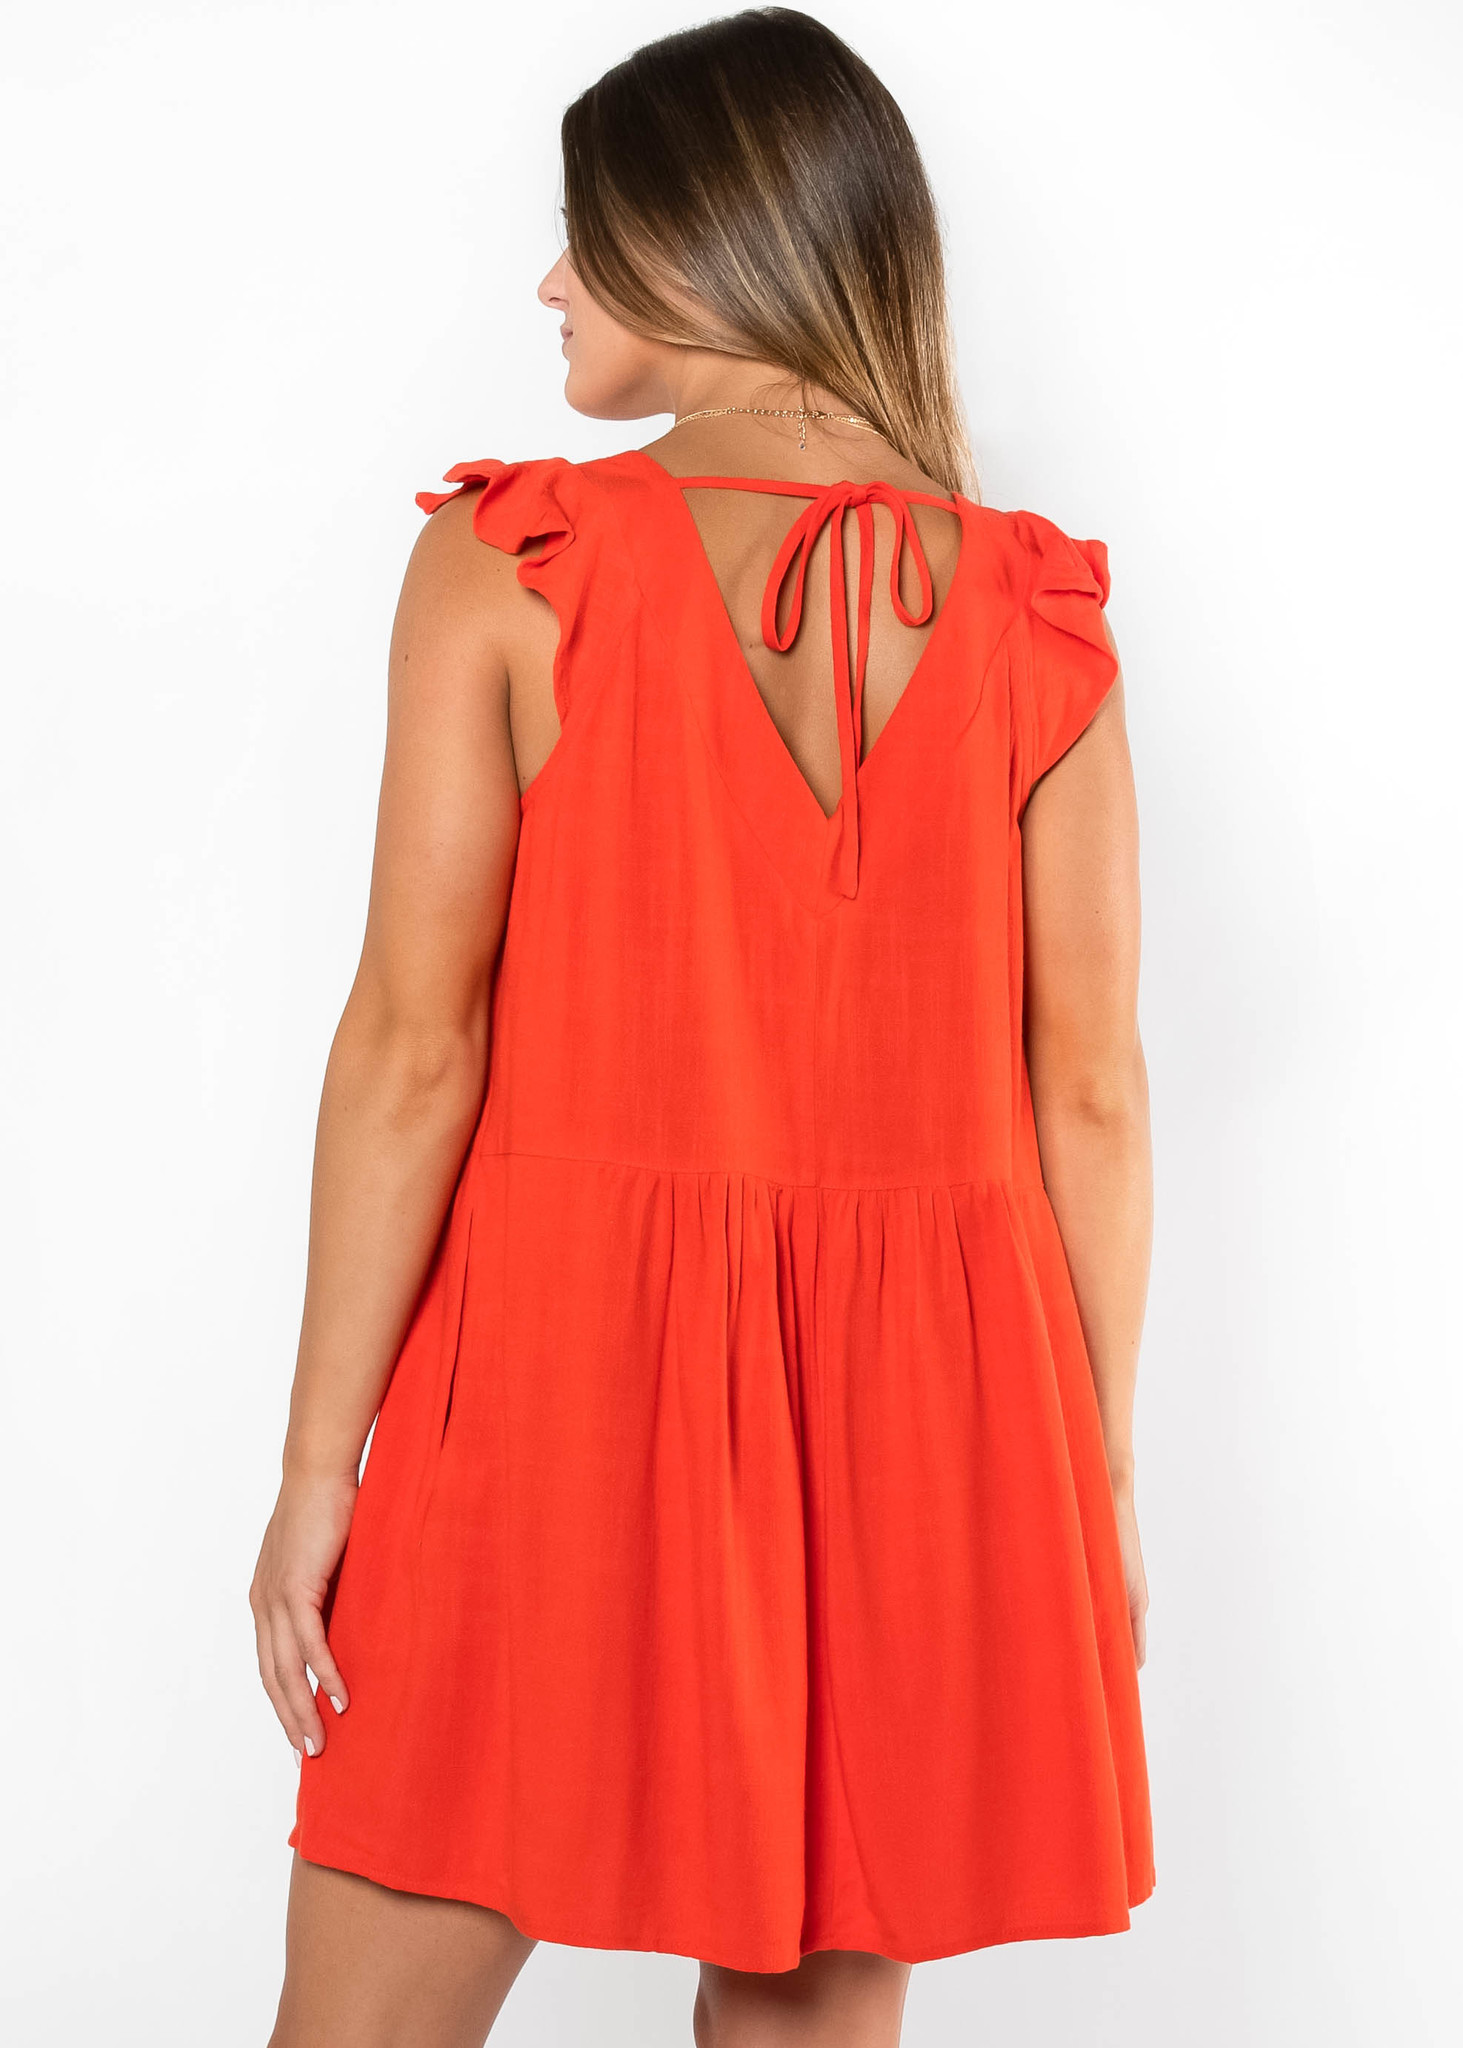 DREAMSTATE RED SHIFT DRESS